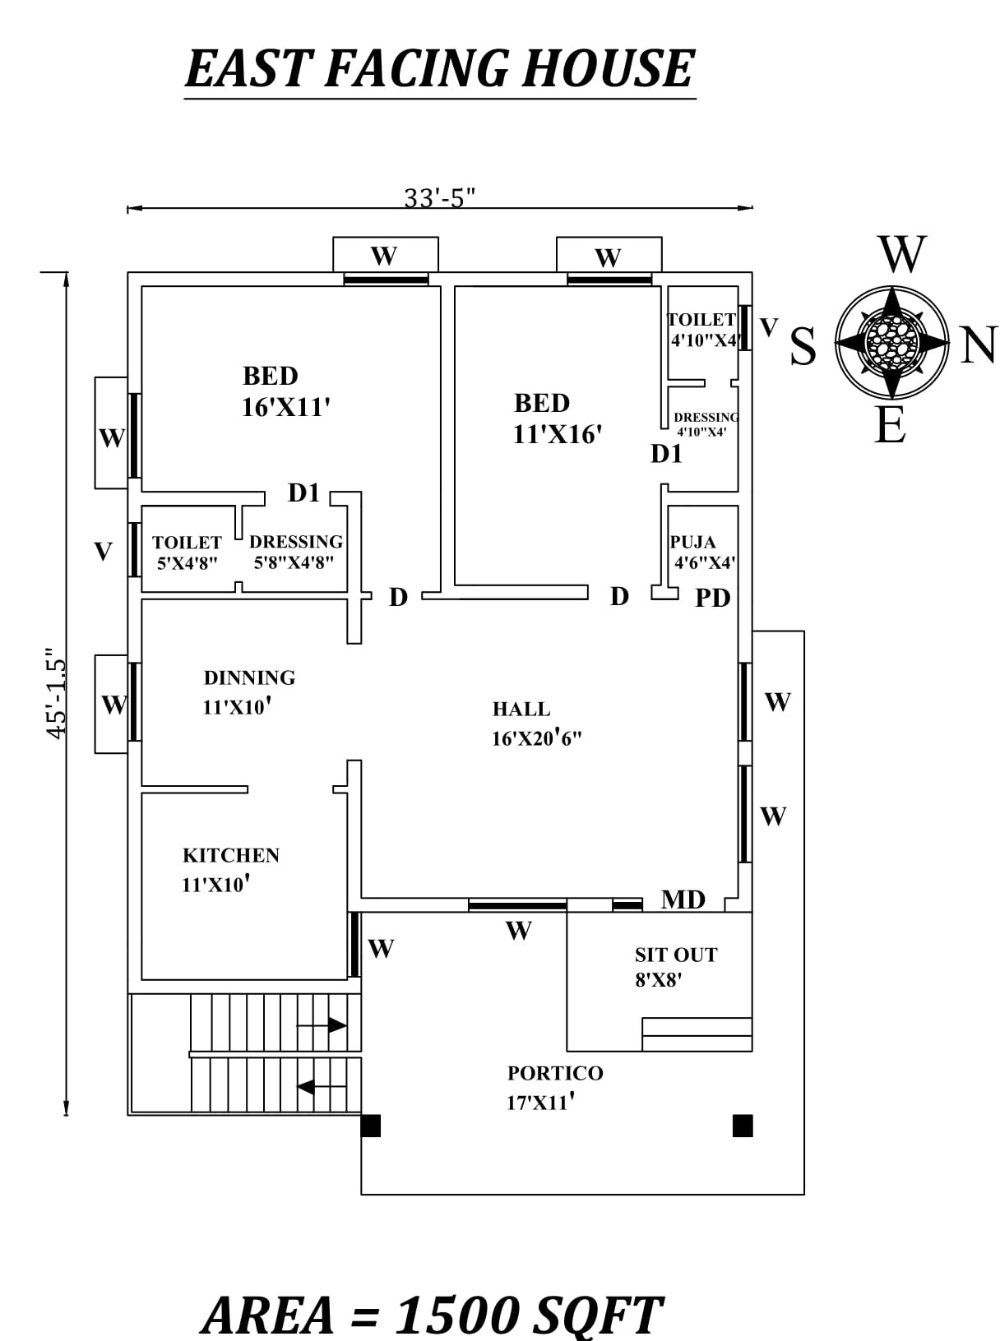 33 5 X45 Amazing 2bhk East Facing House Plan As Per Vastu Shastra Autocad Dwg And Pdf File Details In 2020 20x40 House Plans 20x30 House Plans Family House Plans